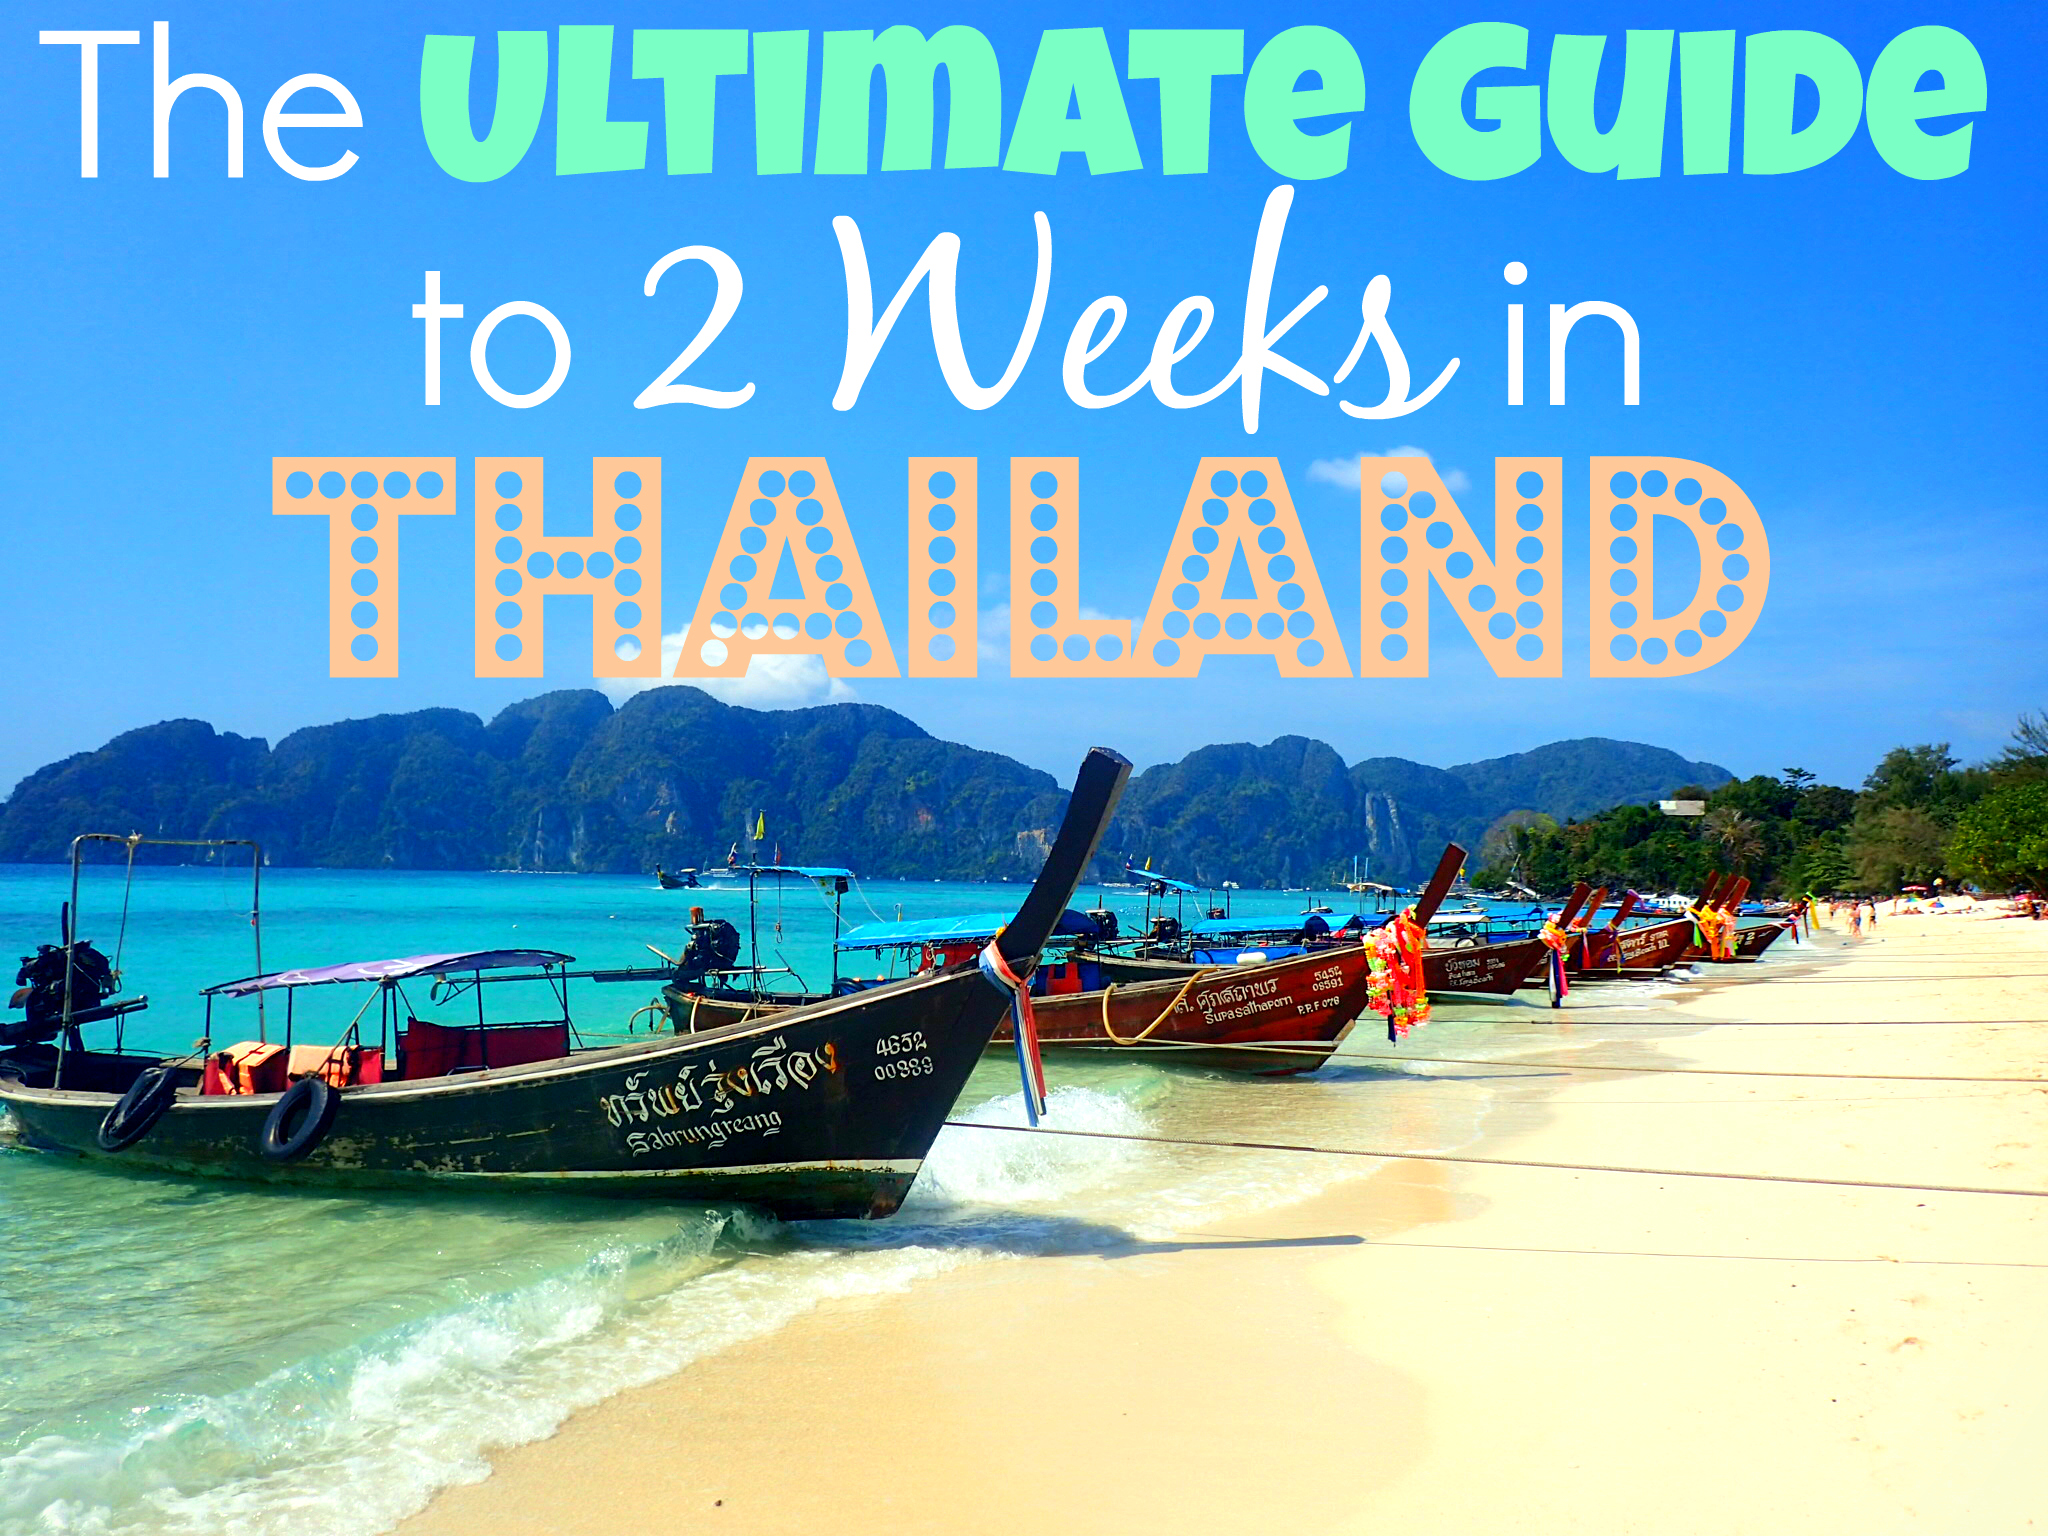 The ultimate guide to 2 weeks in thailandg solutioingenieria Choice Image